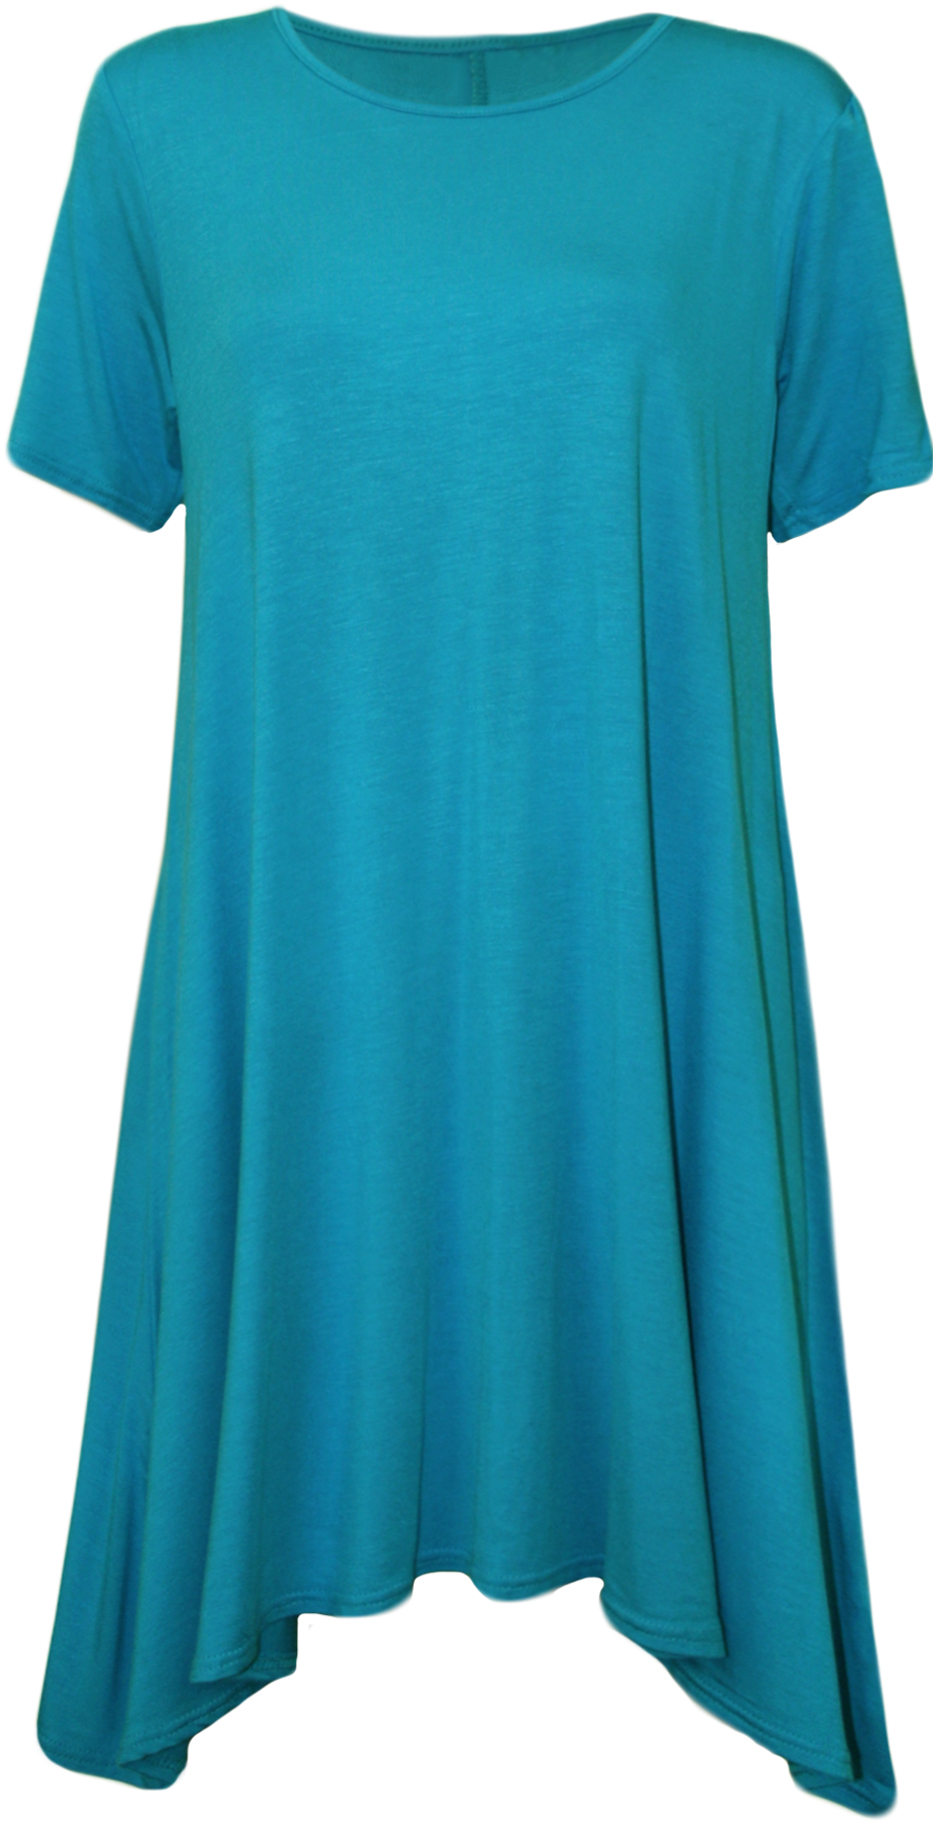 New womens plus size ladies short sleeve swing stretch for Women s turquoise long sleeve shirt